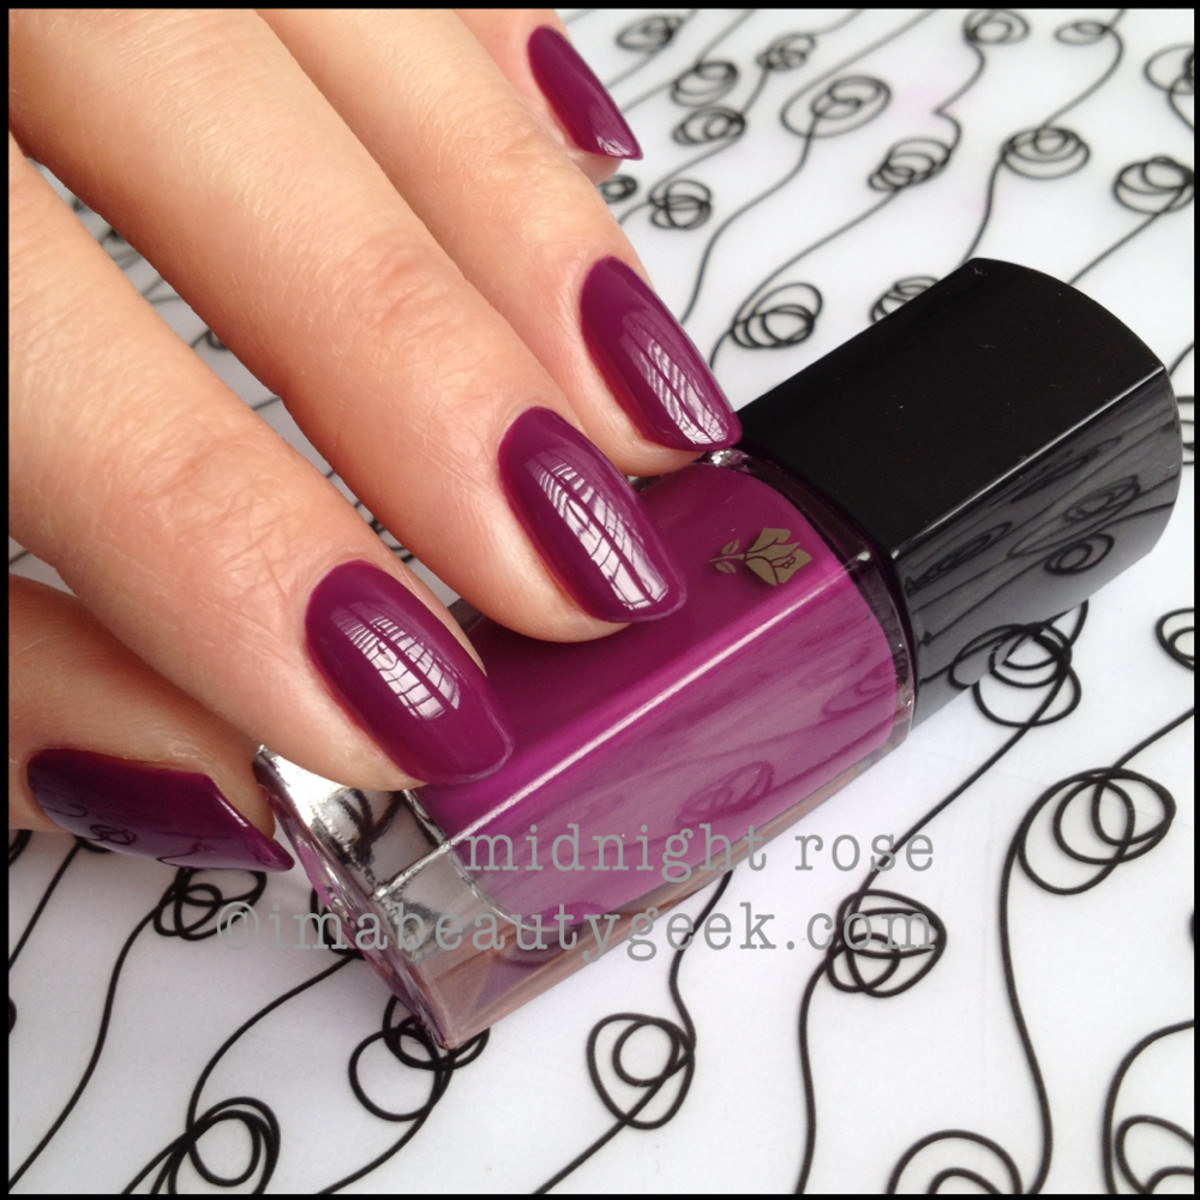 Lancome polish Midnight Rose